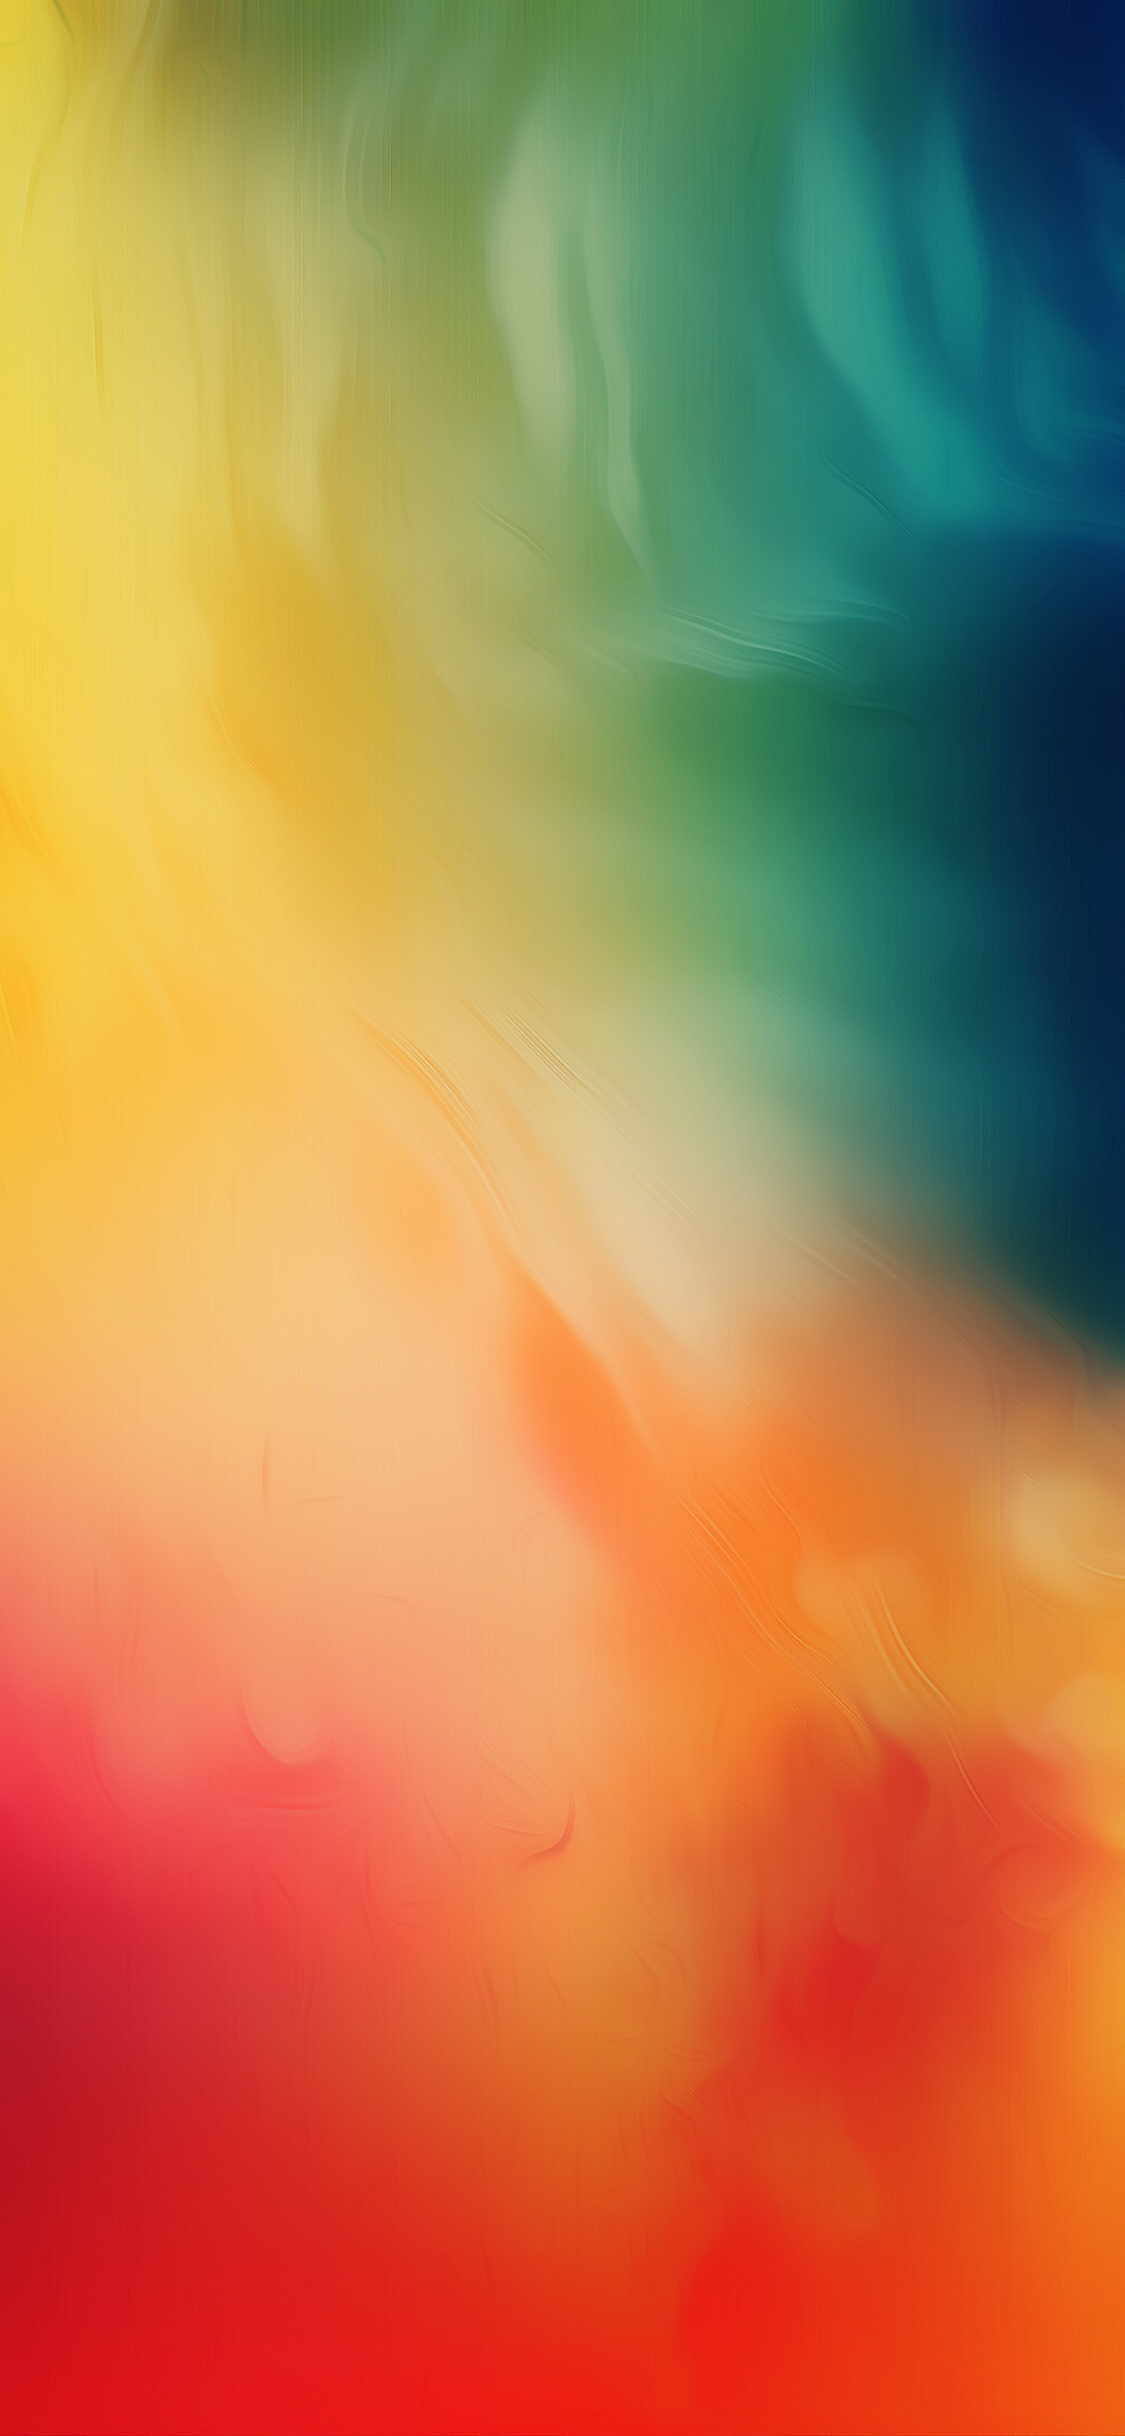 Abstract Wallpapers Vivid Contrasting Colors Pack 3